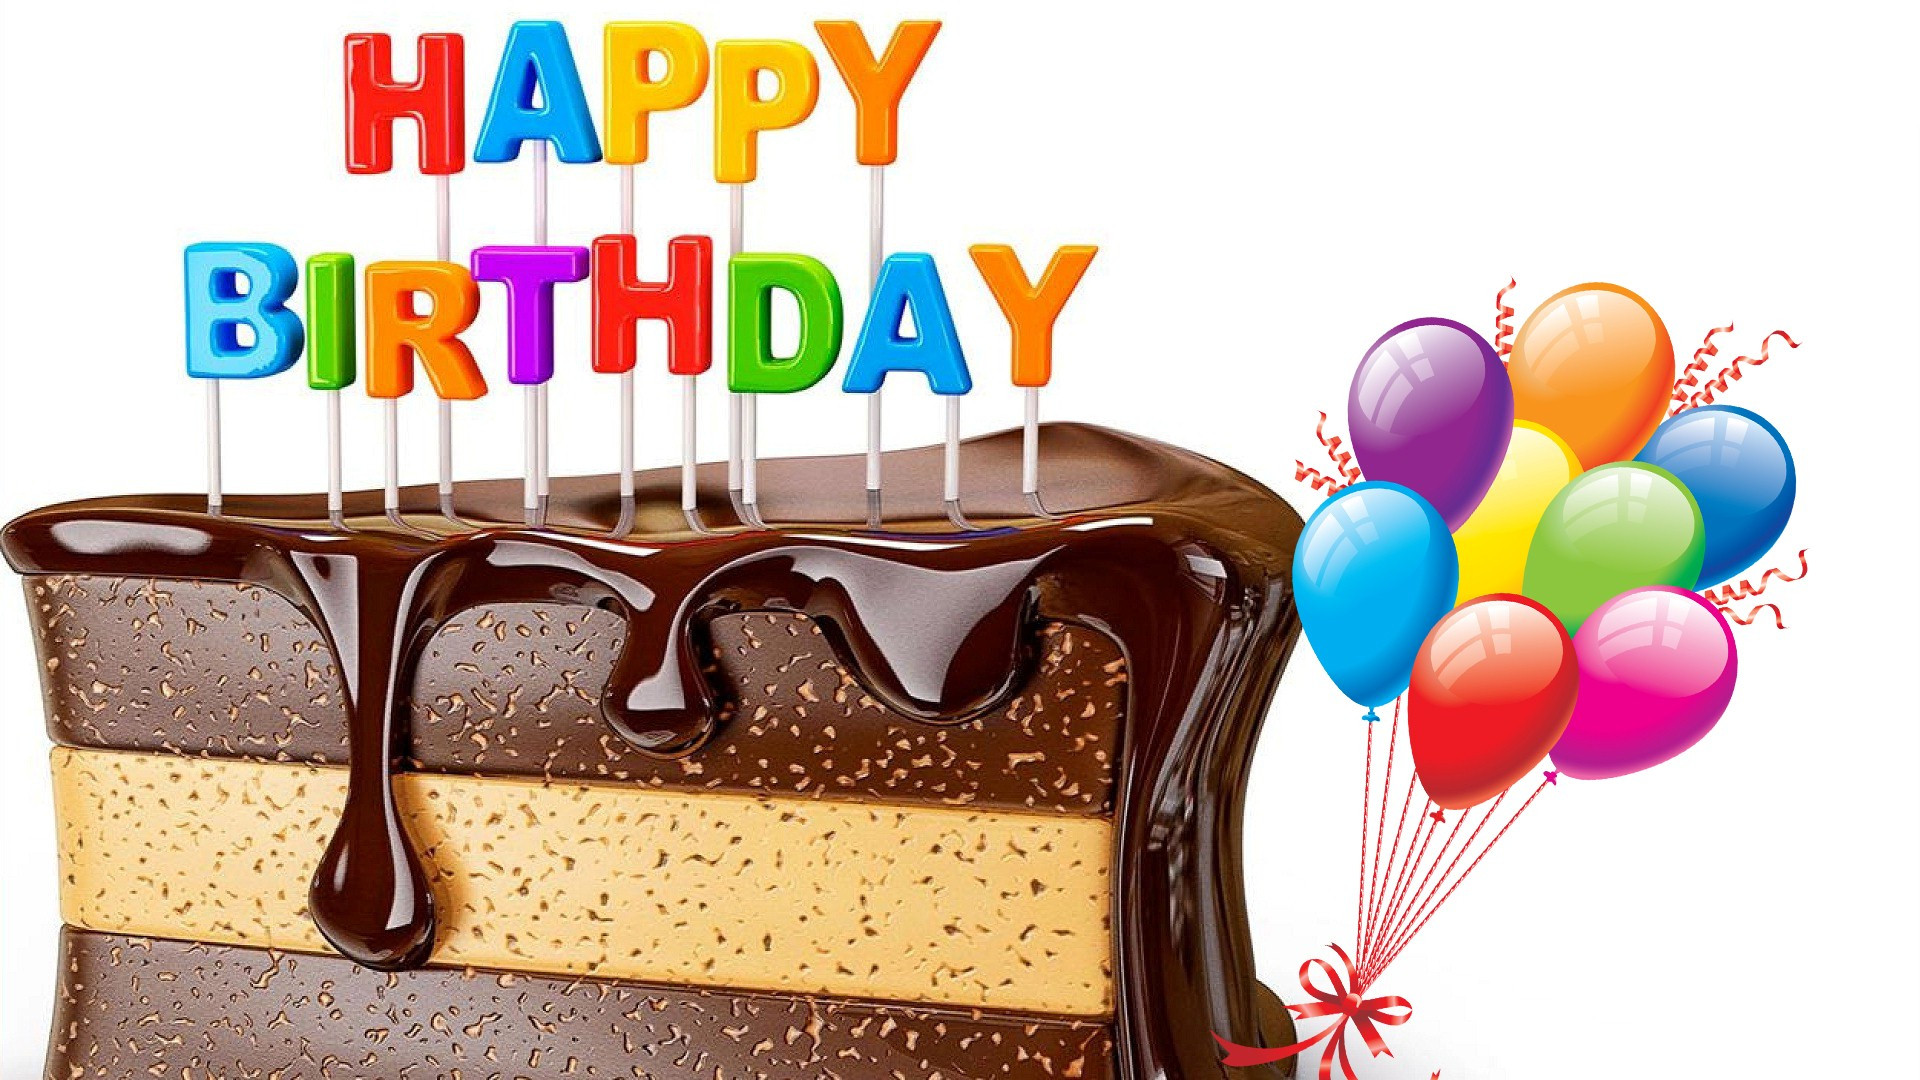 Happy Birthday Cake Hd Wallpaper